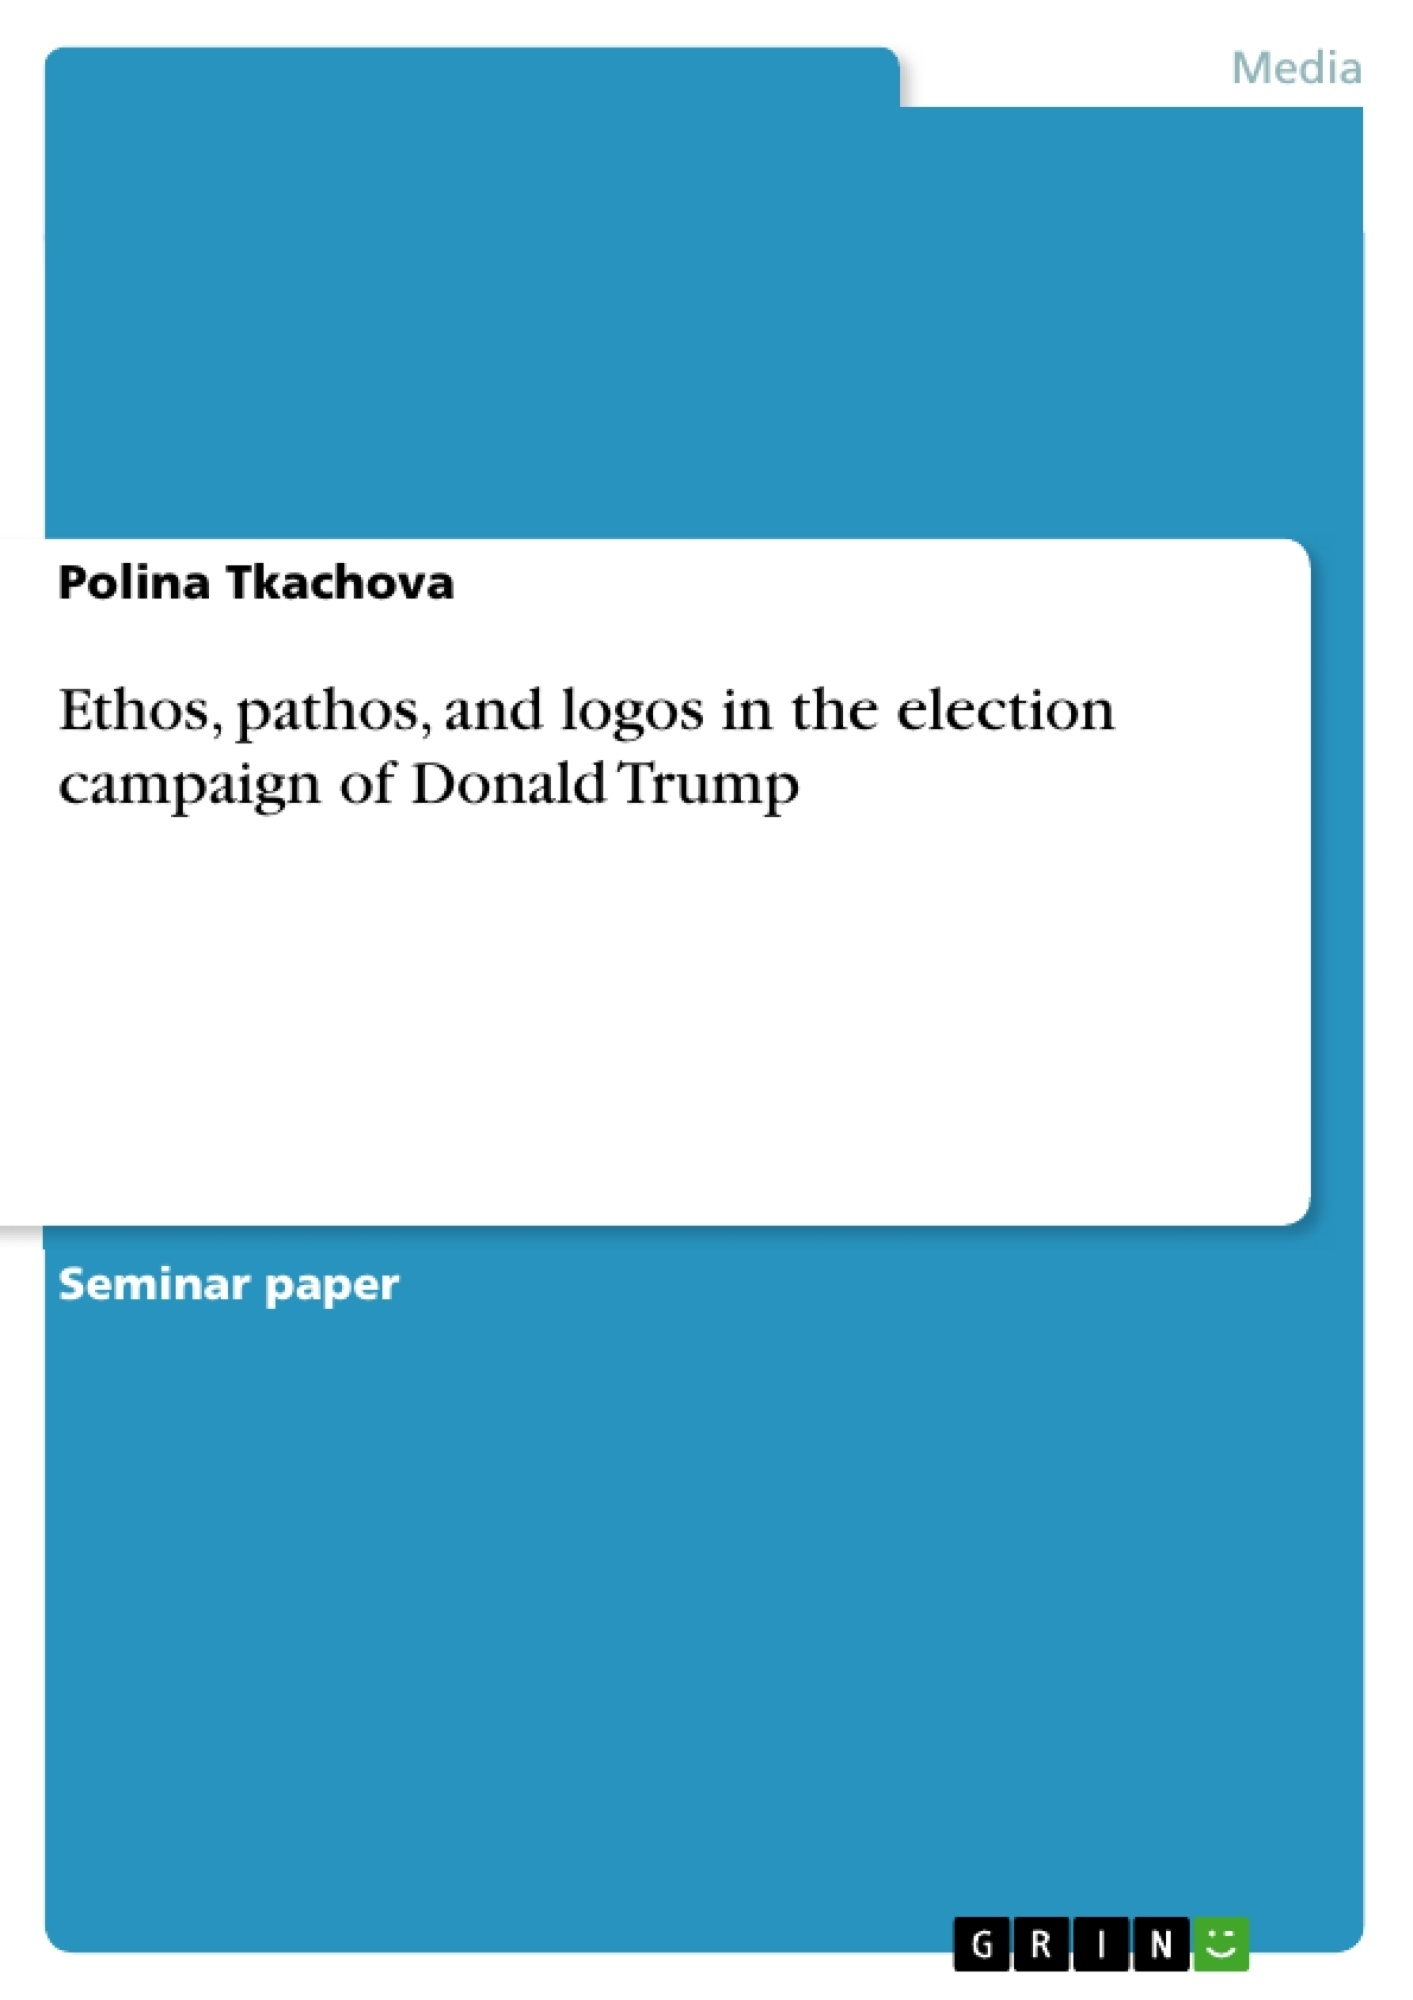 Title: Ethos, pathos, and logos in the election campaign of Donald Trump